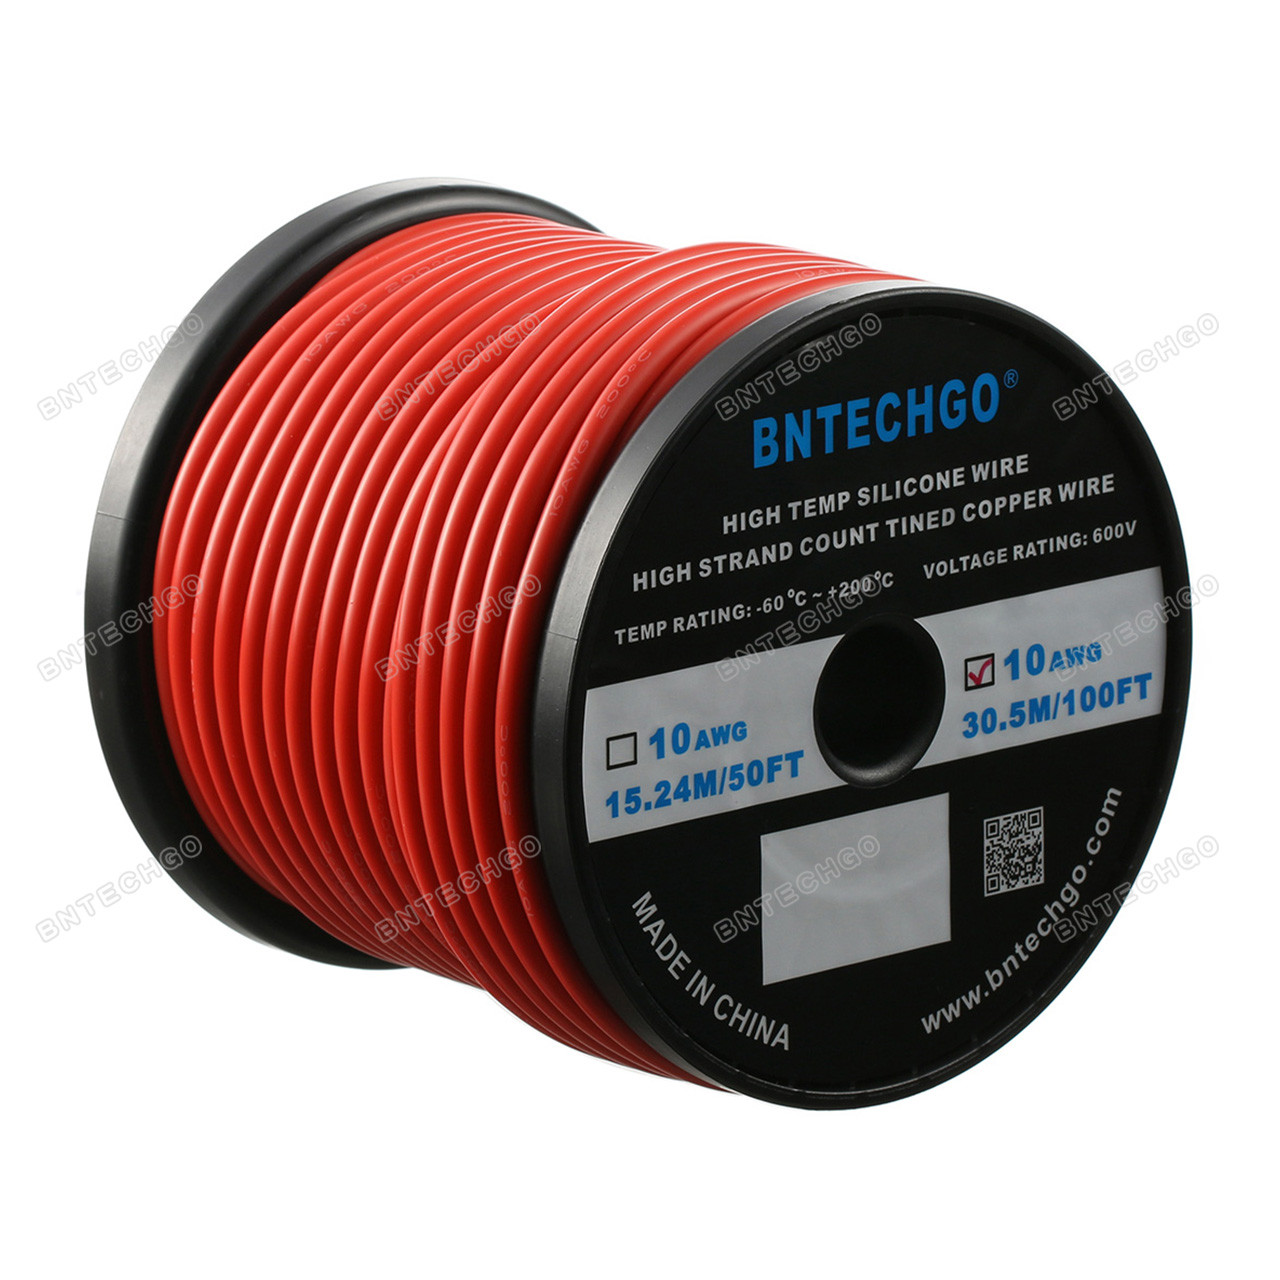 25 Feet Black Fine Strand Tinned Copper 8 AWG Gauge Silicone Wire